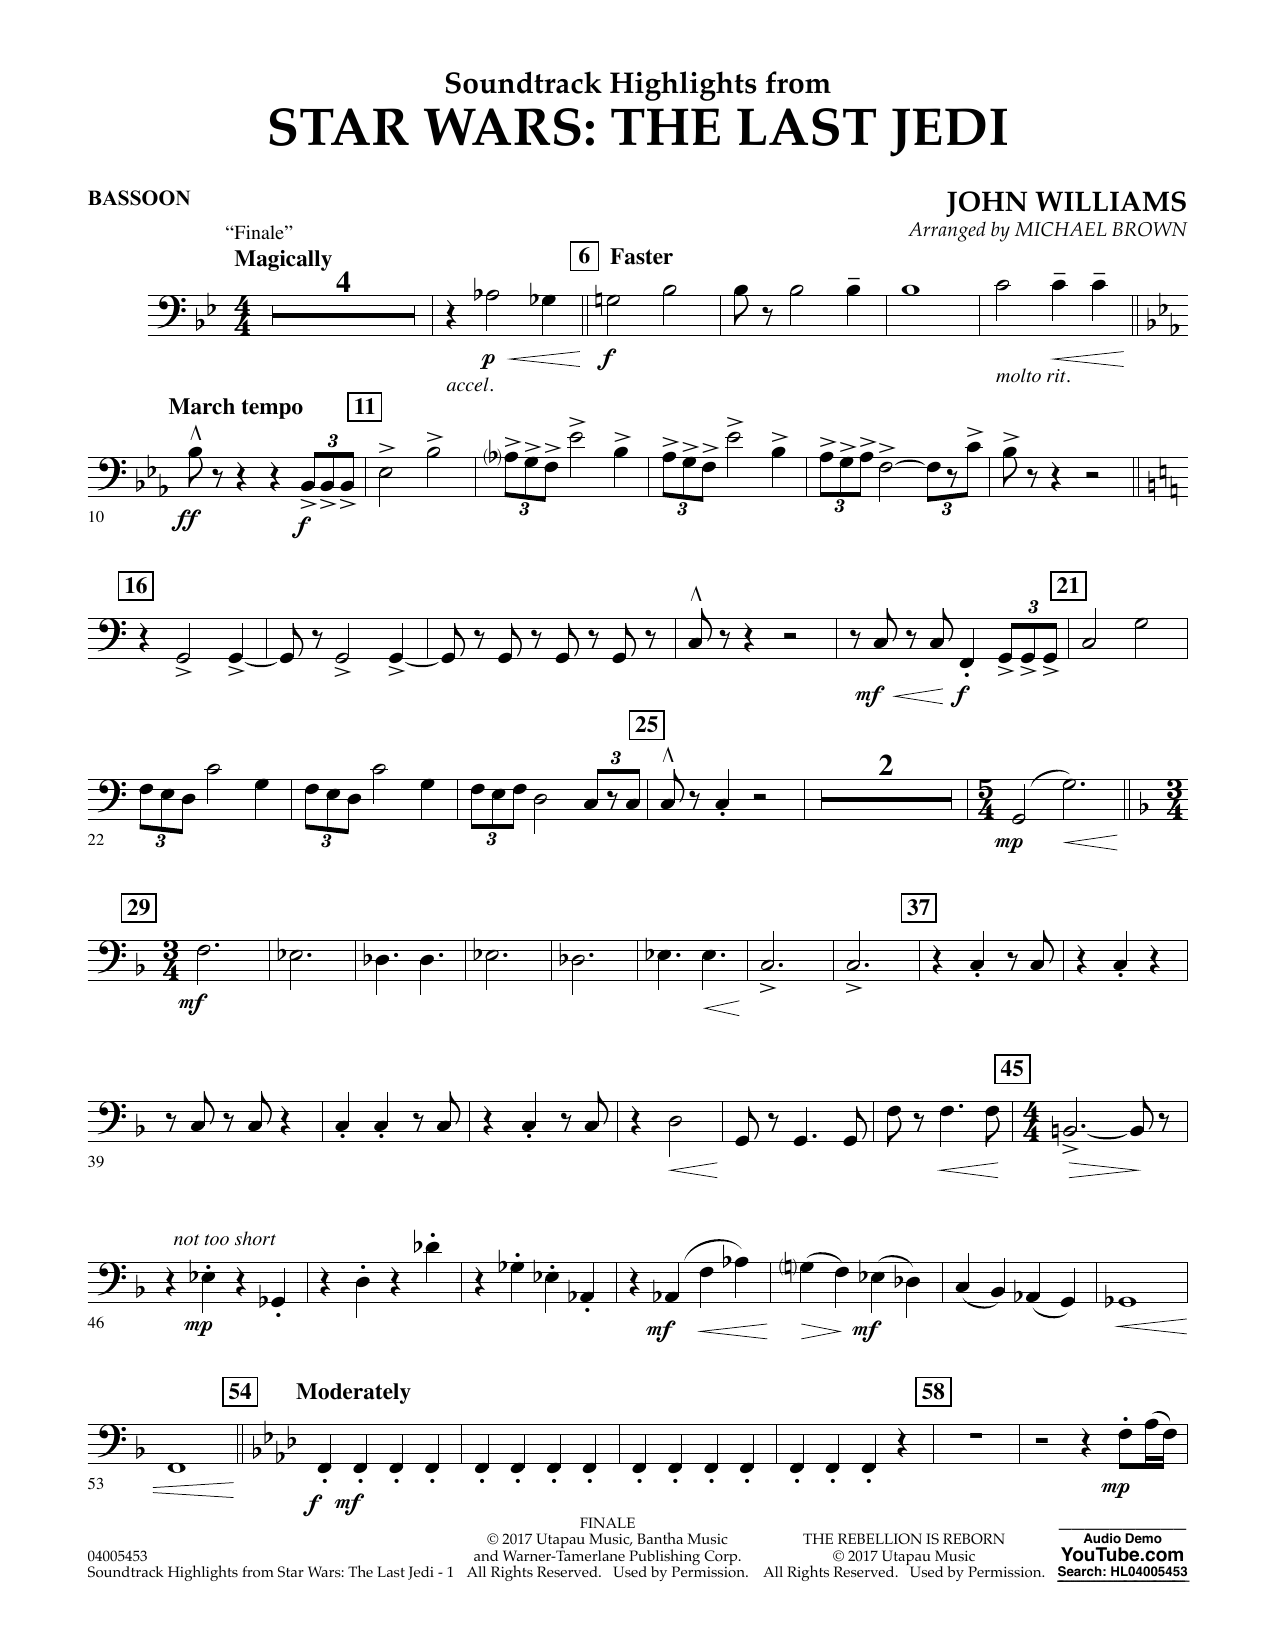 Michael Brown Soundtrack Highlights from Star Wars: The Last Jedi - Bassoon sheet music notes and chords. Download Printable PDF.